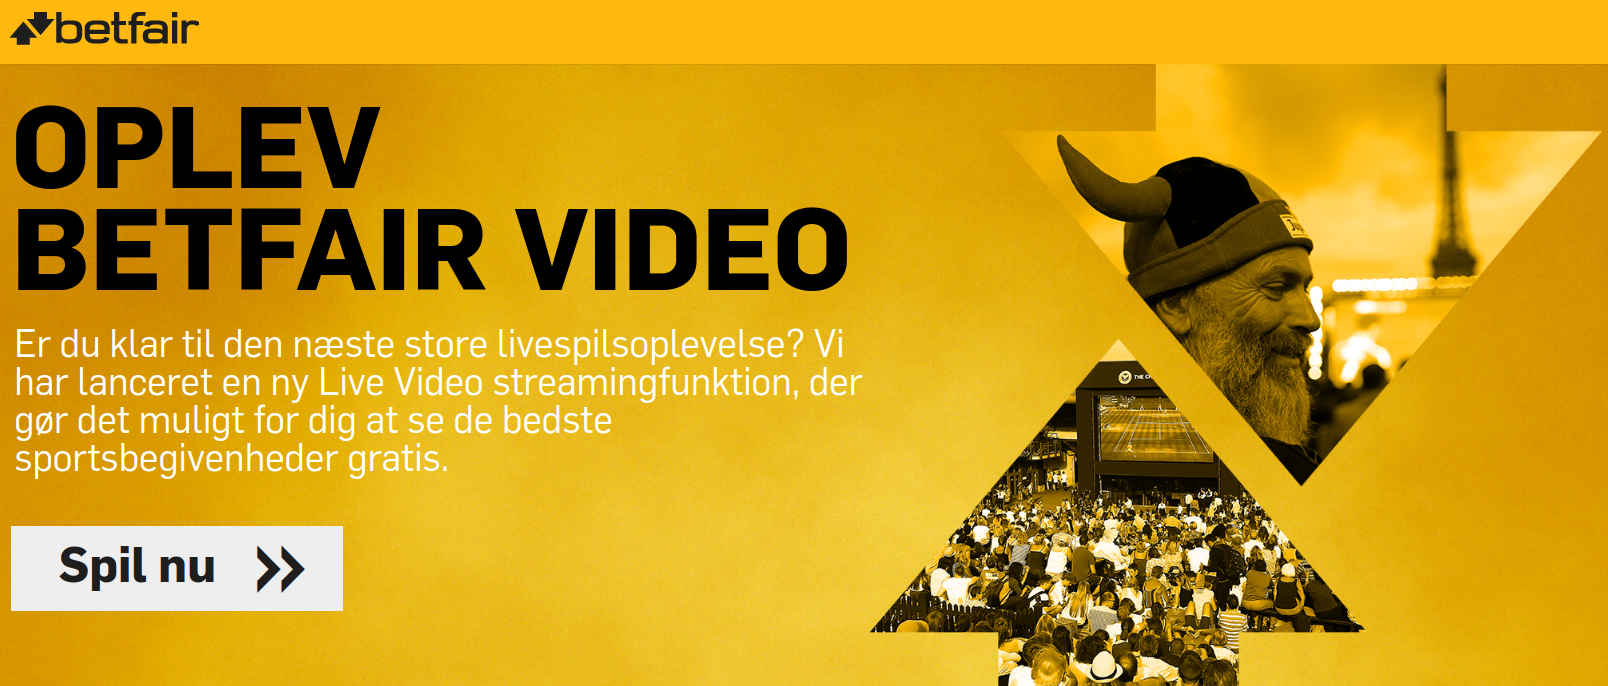 Live streaming hos Betfair